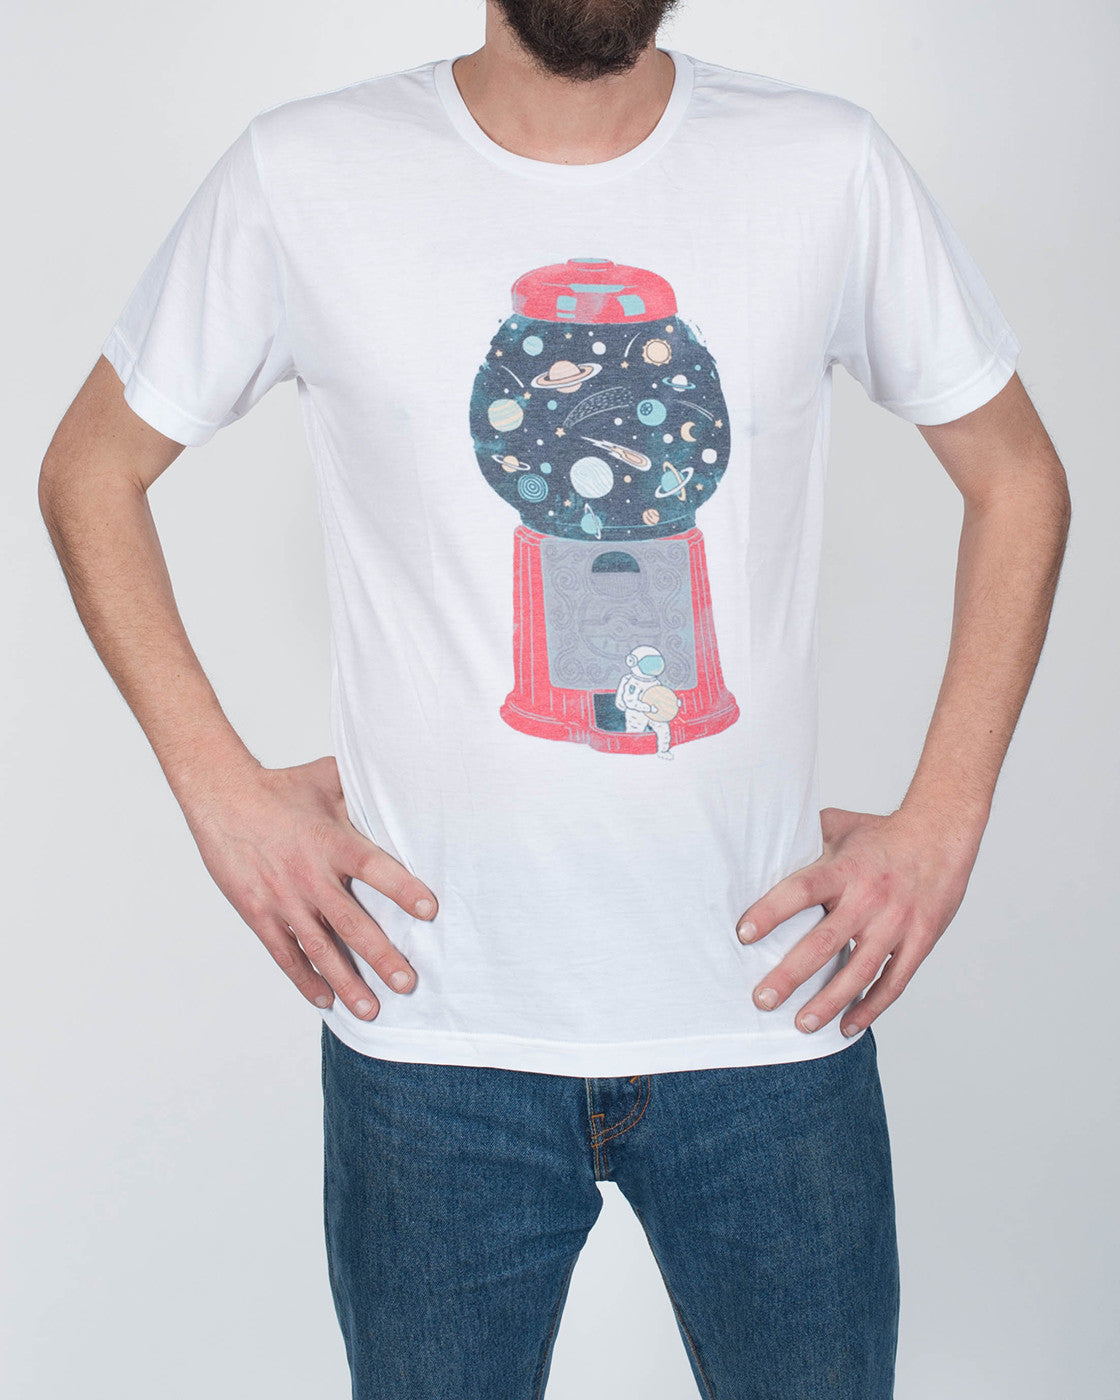 Spaceball T-Shirt